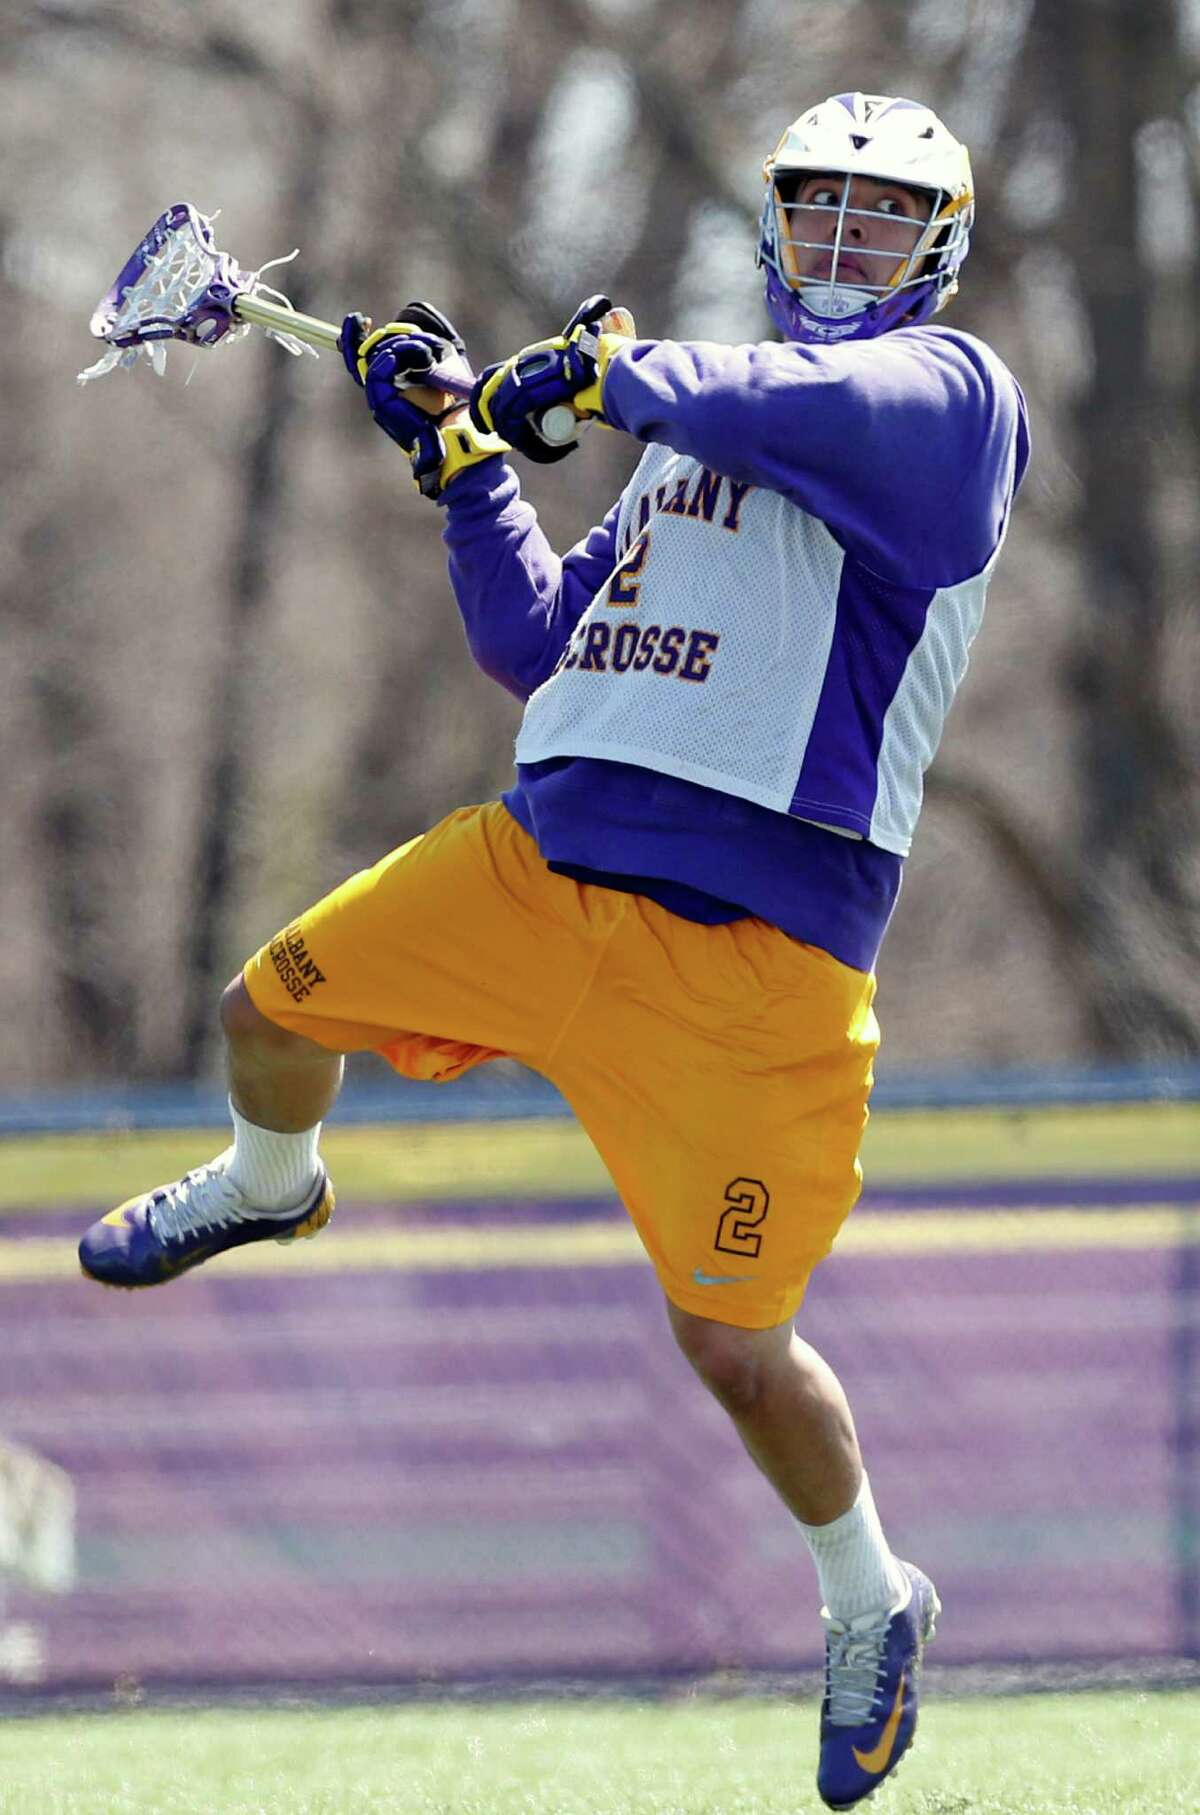 In this photo taken on Monday, April 28, 2014, University at Albany lacrosse player Miles Thompson (2) practices in Albany, N.Y. A trio of Native American players, Miles, younger brother Lyle, and cousin Ty, have transformed Albany into an offensive juggernaut in Division I men's lacrosse. (AP Photo/Mike Groll) ORG XMIT: NYMG203